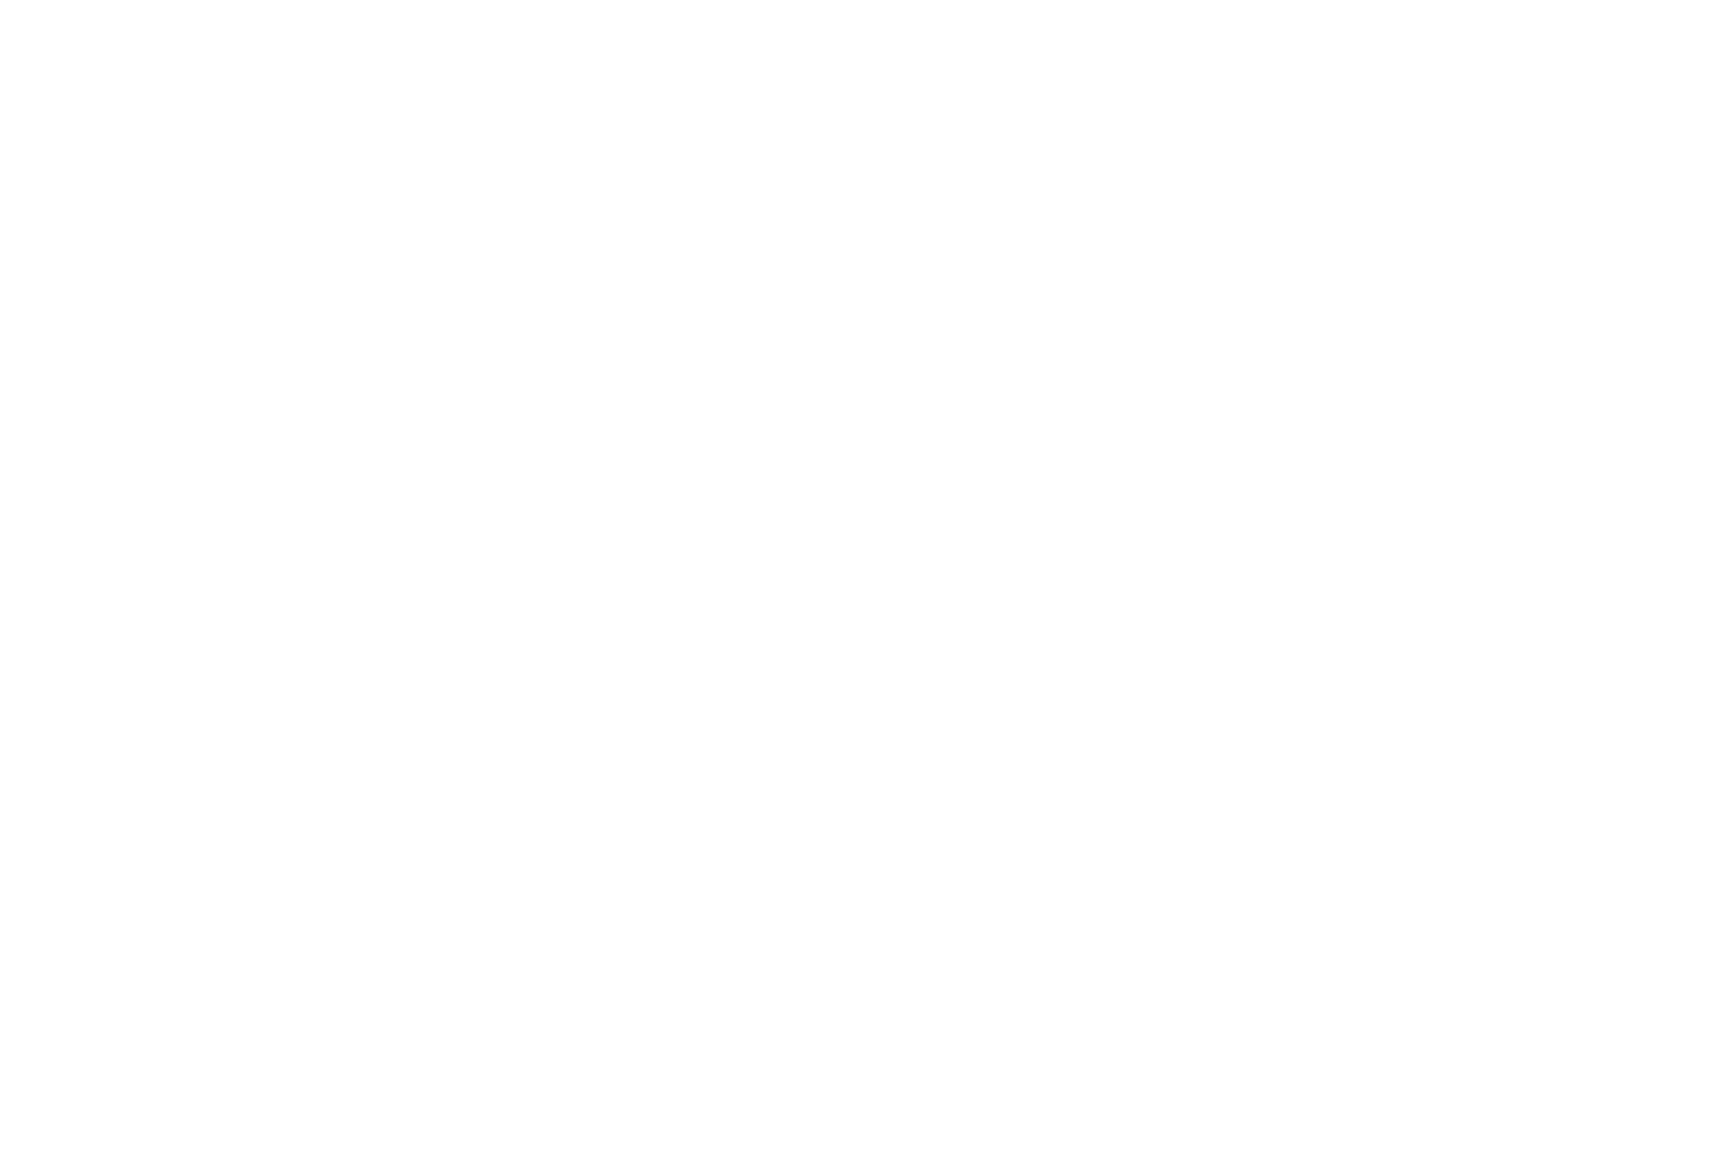 Best Runner Up AmateurCollege Short Film - Elkhorn Valley Film and Media Conference - 2012.png